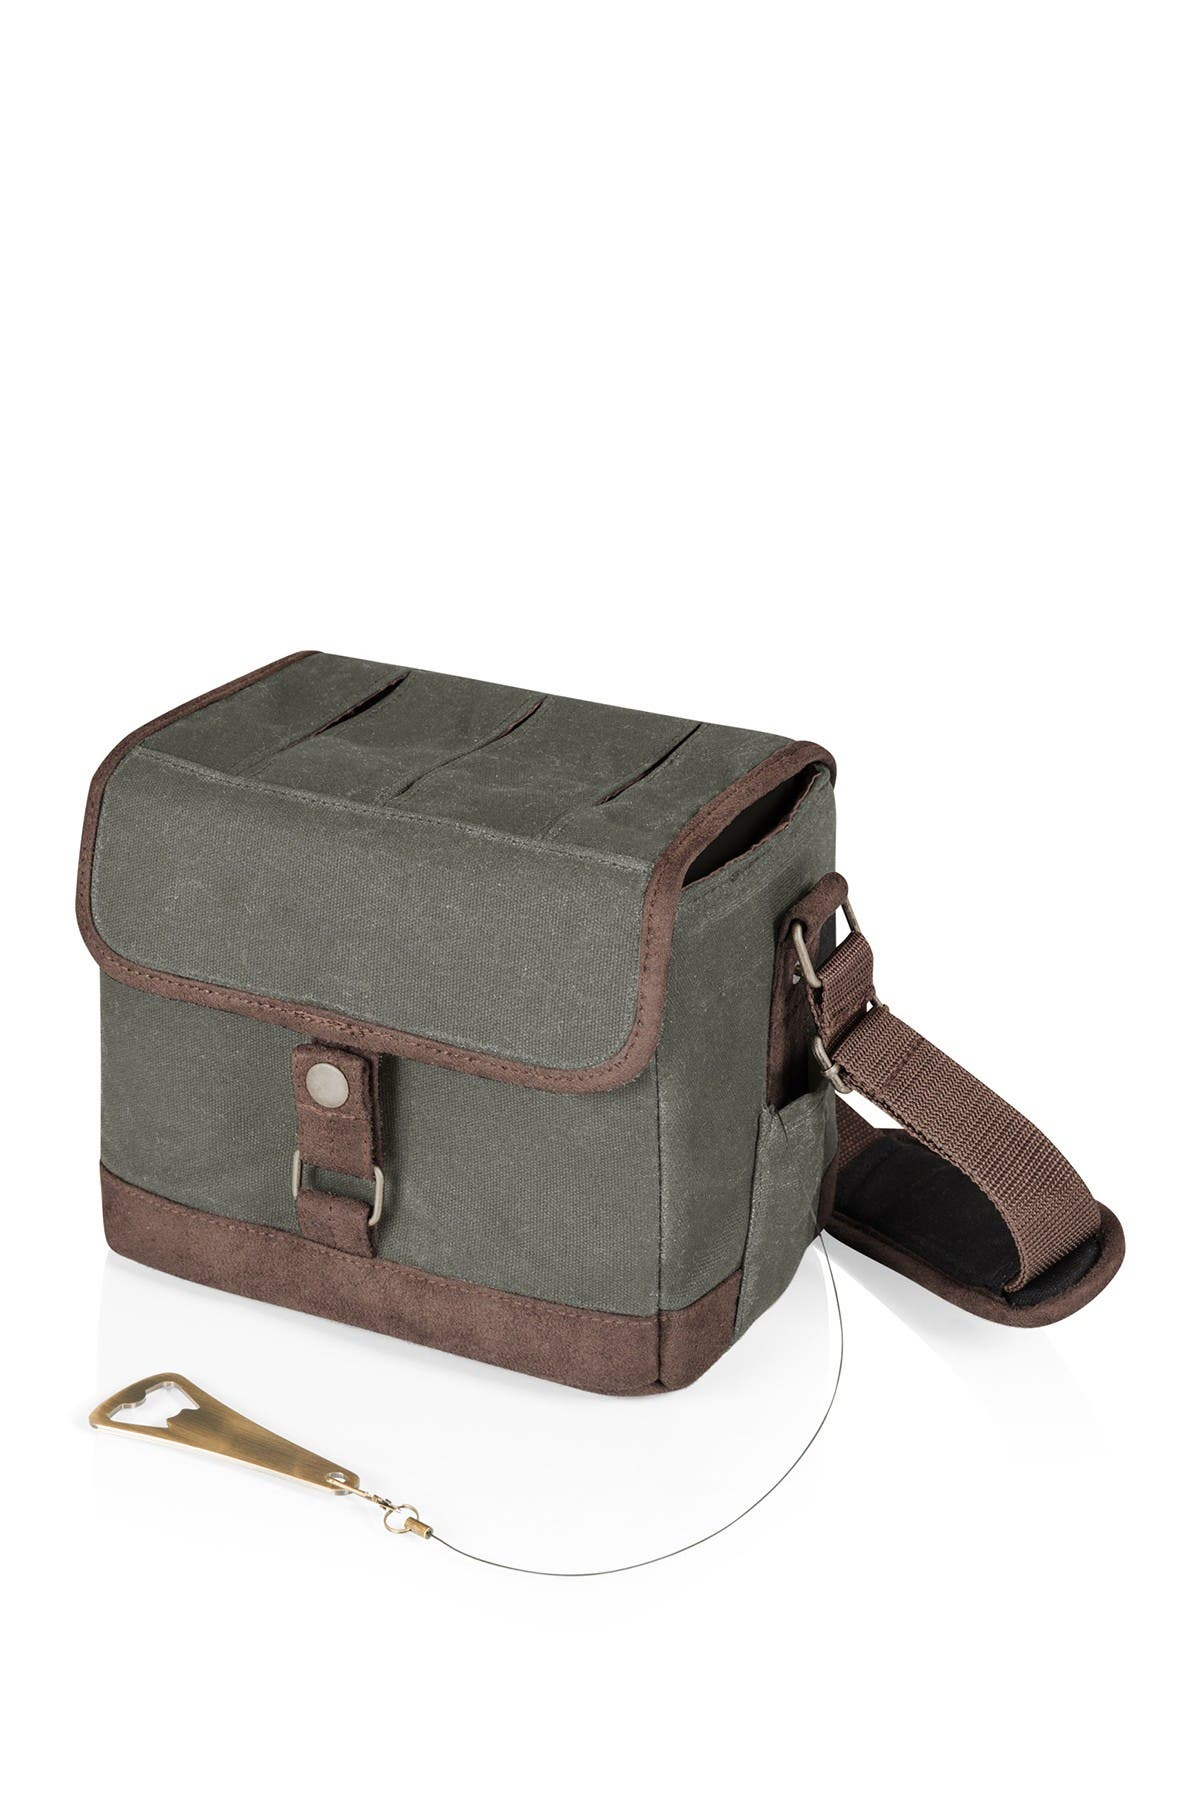 Image of Picnic Time Beer Caddy Cooler w/Opener - Khaki